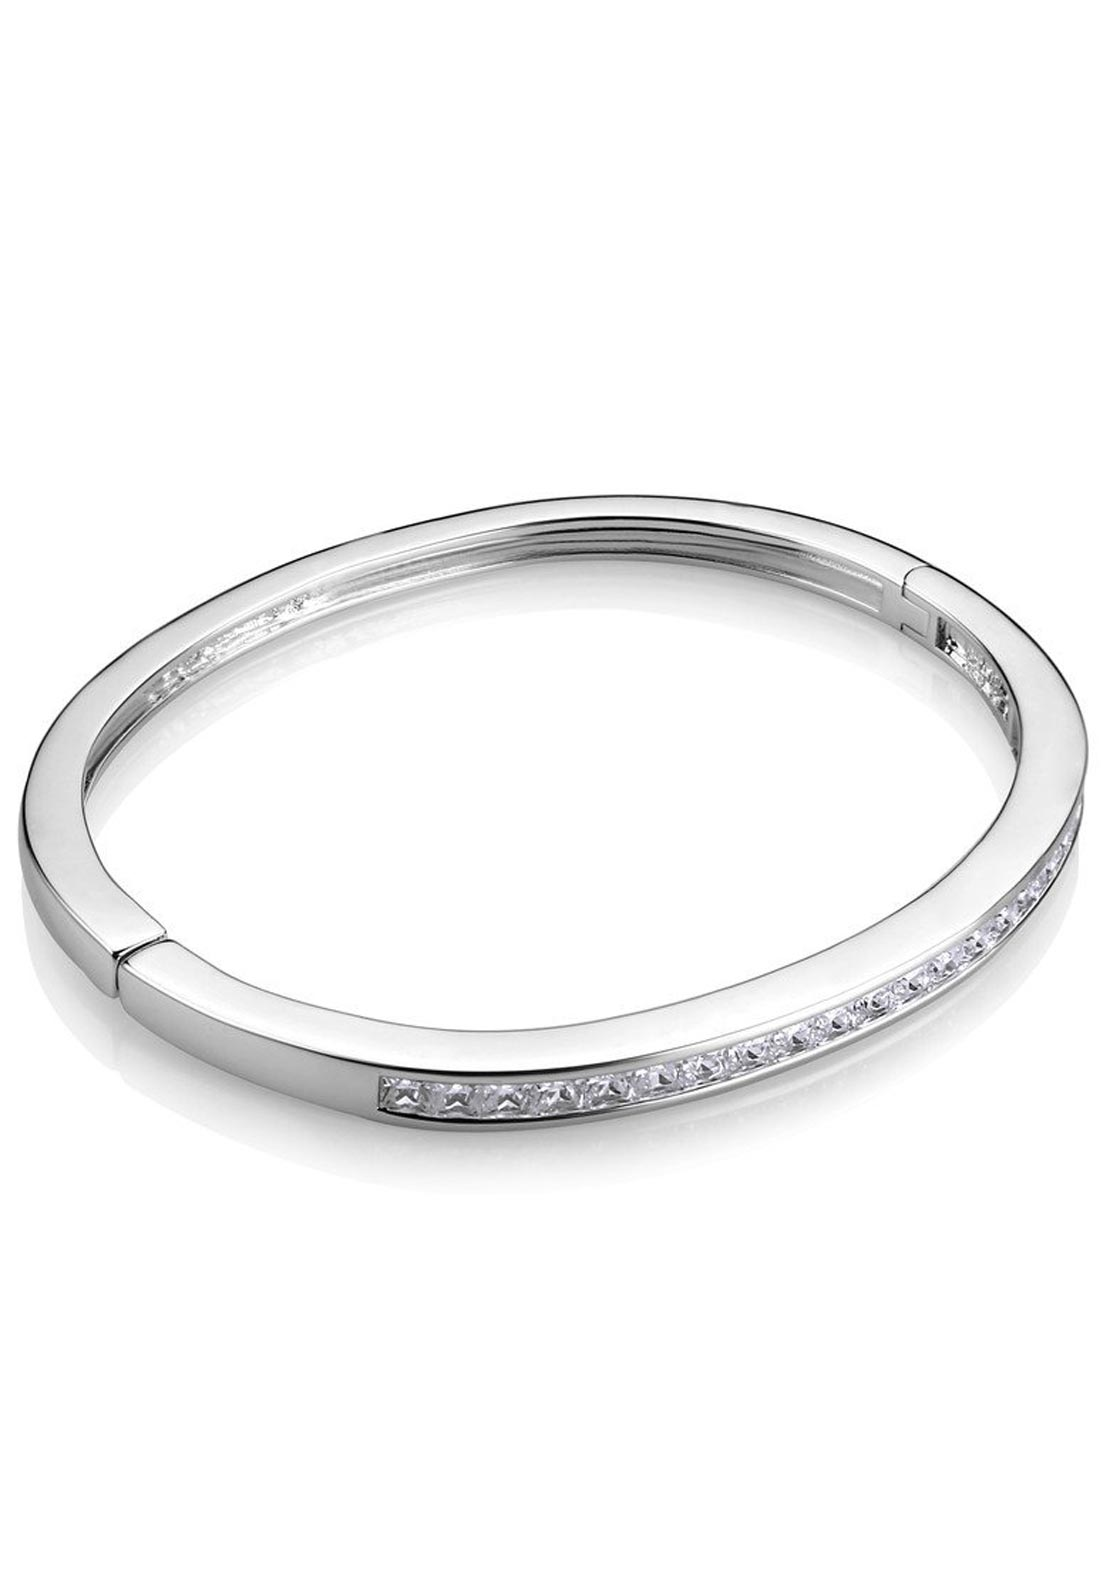 Newbridge Clear Stone Bangle, Silver